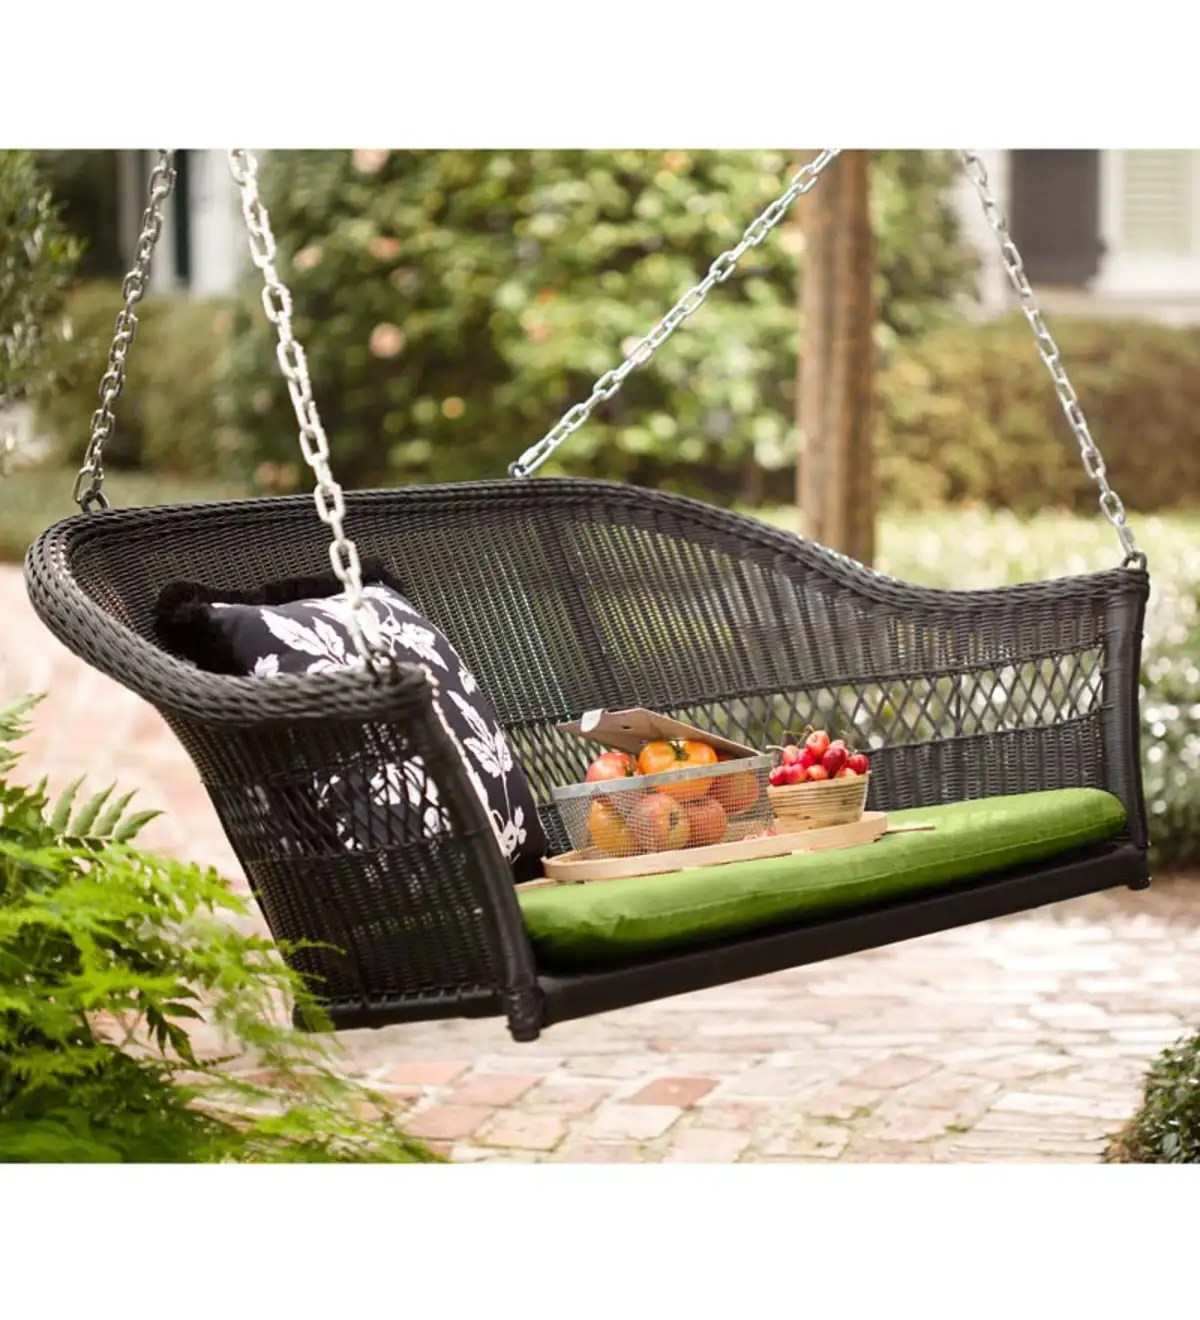 Easy Care Resin Wicker Swing | Swings & Hammocks | Outdoor ... on Outdoor Living Wicker  id=84360